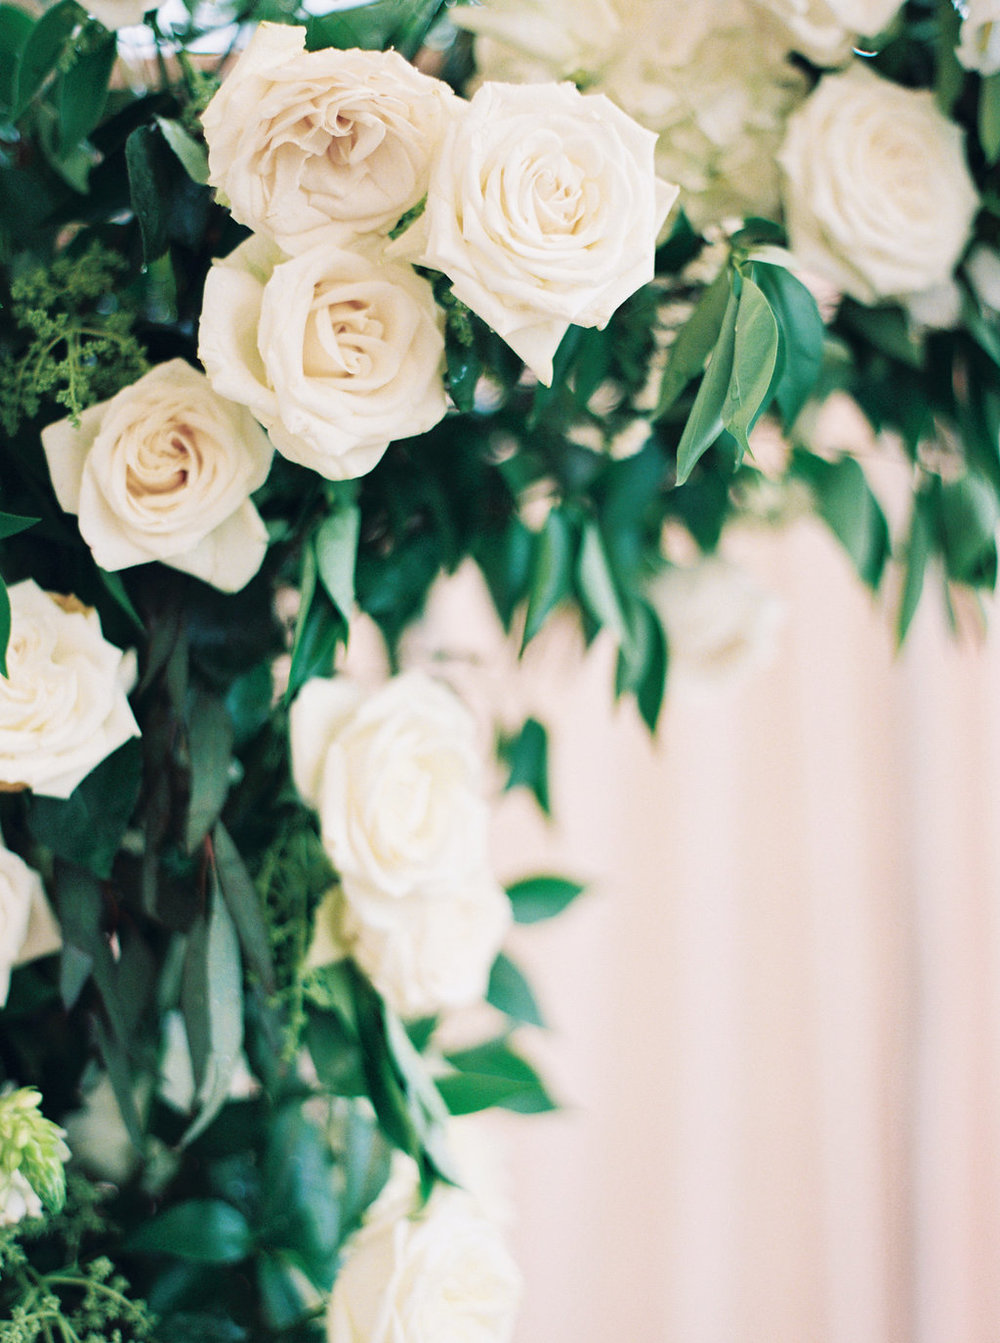 Photosynthesis Floral Design-Kim Stockwell Photography